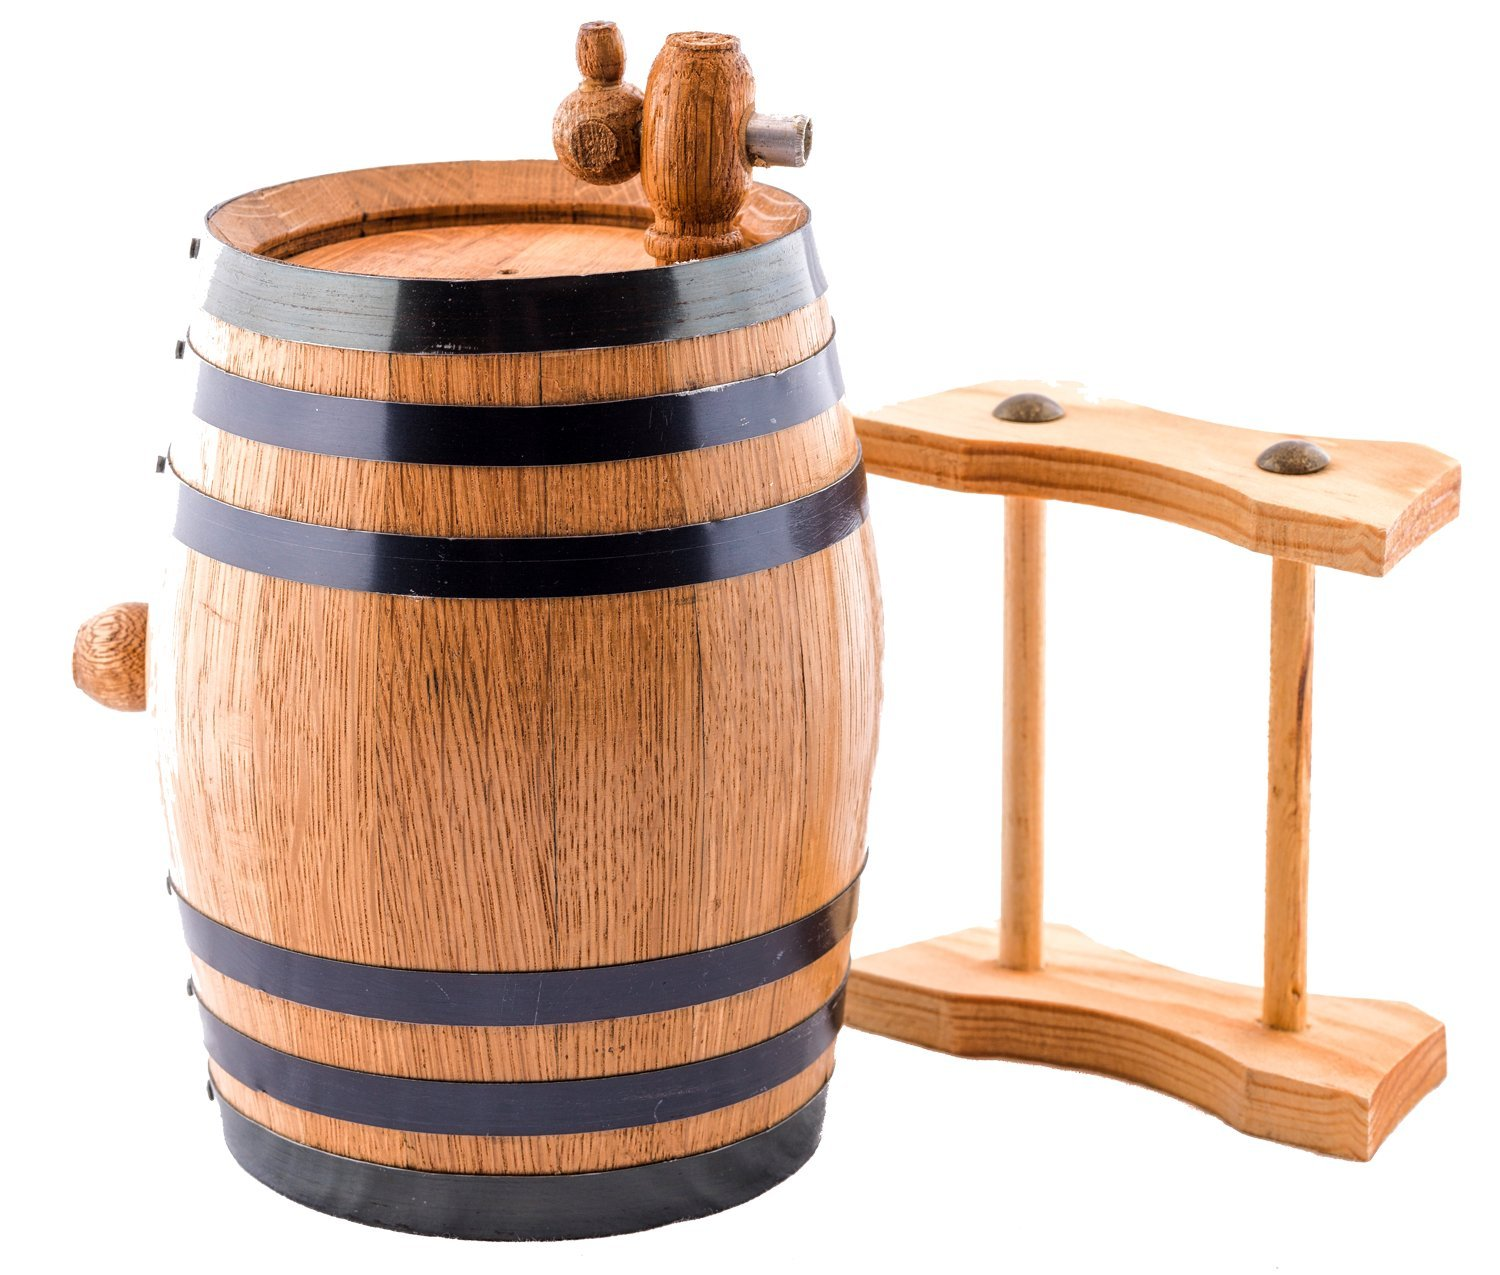 Sofia's Findings 1 Liter American Oak Aging Whiskey Barrel | Age Your own Tequila, Whiskey, Rum, Bourbon, Wine - 1 Liter or .26 Gallon Barrel by Sofia's Findings (Image #2)